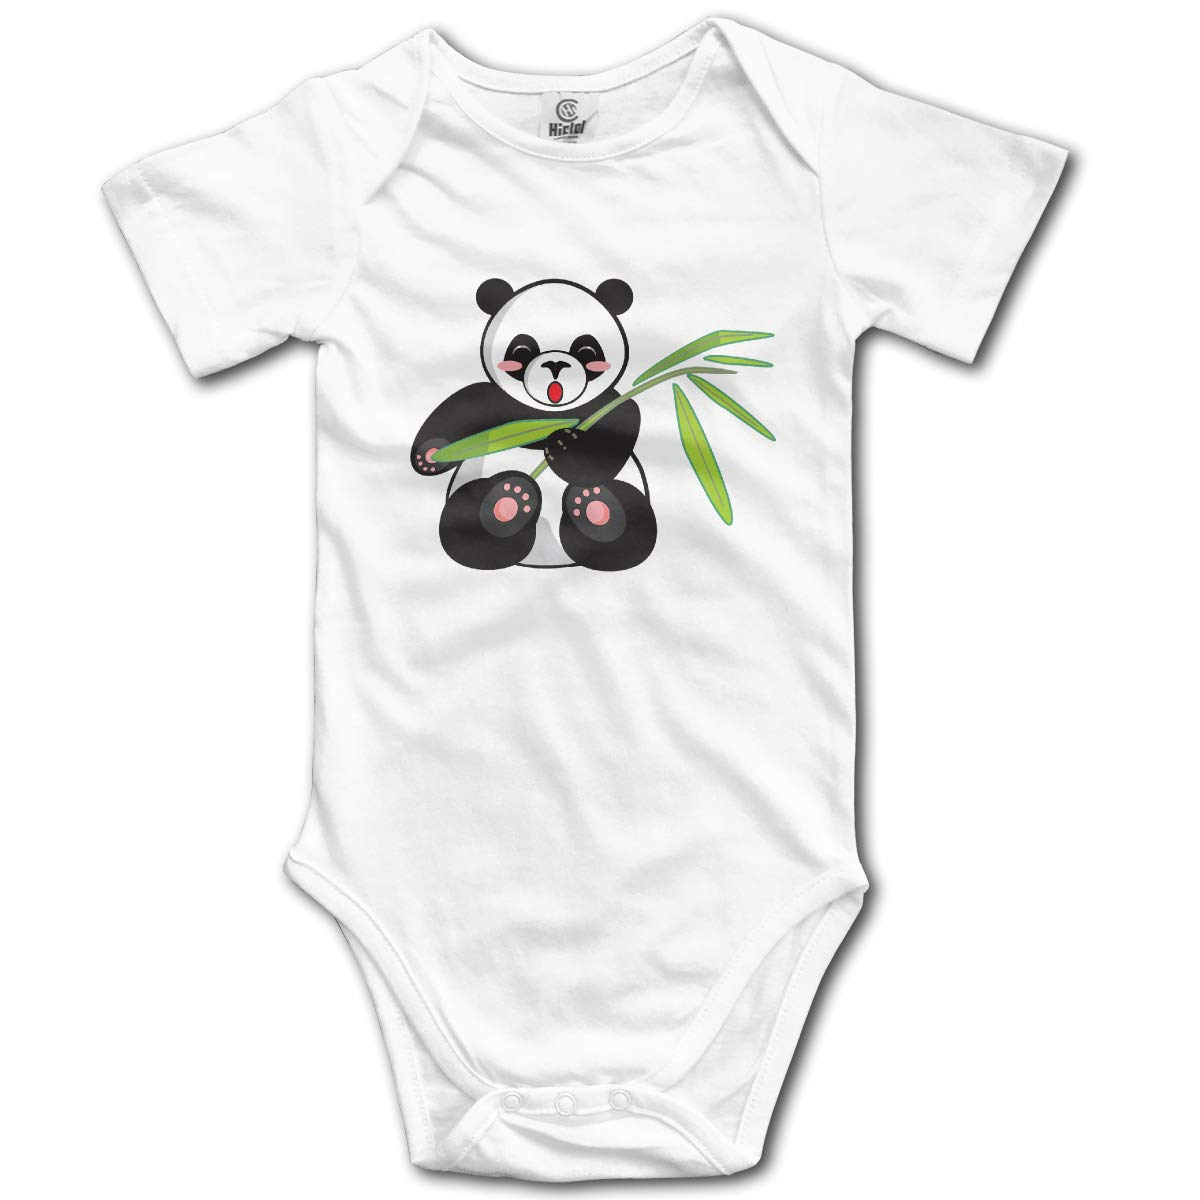 QUZtww Cartoon Panda and Bamboo Cotton Girl Baby Bodysuit Short Sleeve Romper Jumpsuits Onesies